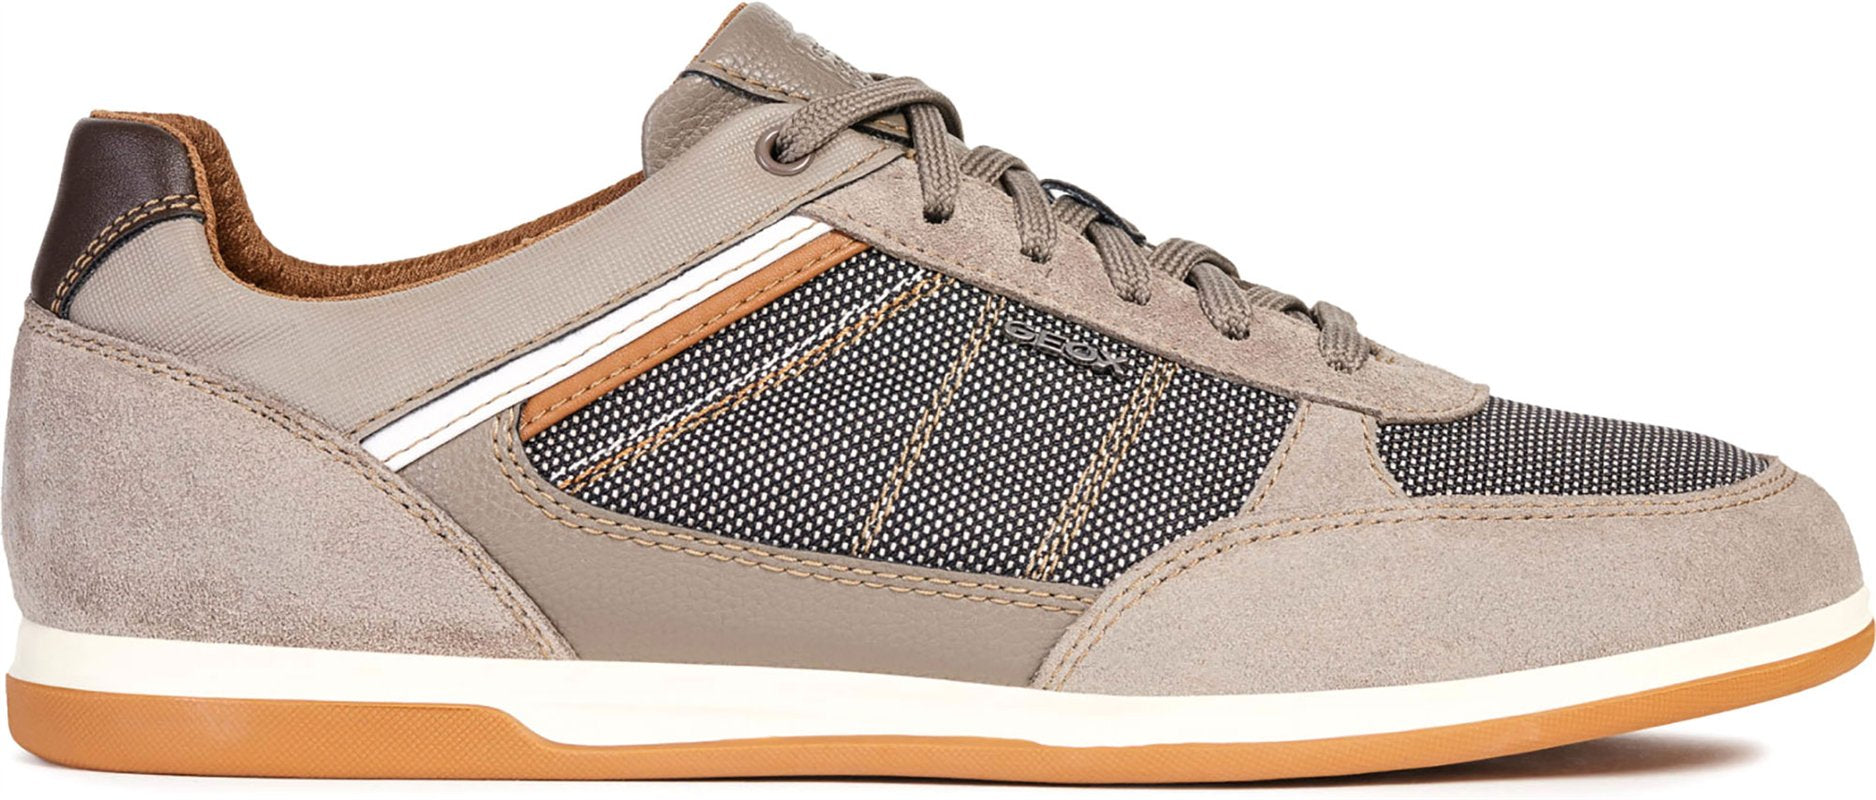 dc74dba00e8 Geox Renan Suede and Textile Sneakers – Seattle Thread Company